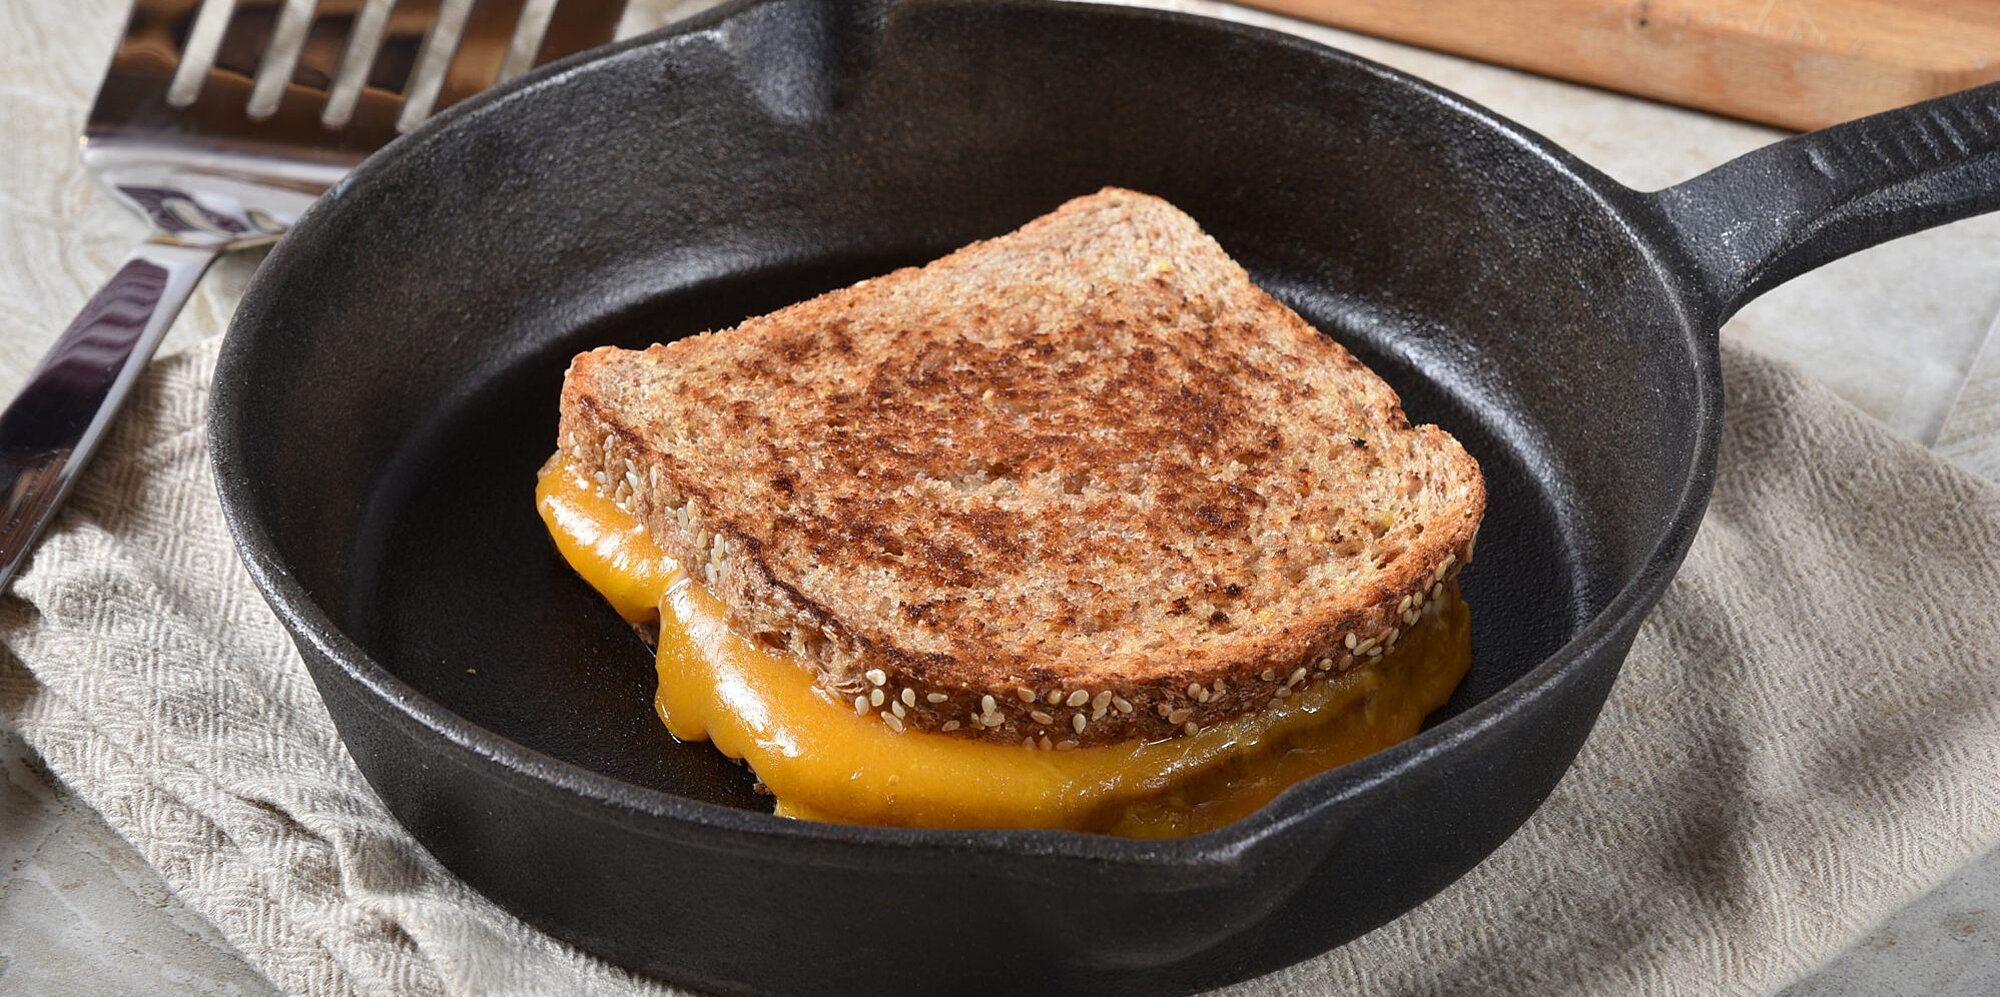 How to Host an Epic Make-Your-Own Grilled Cheese Night in 6 Easy Steps